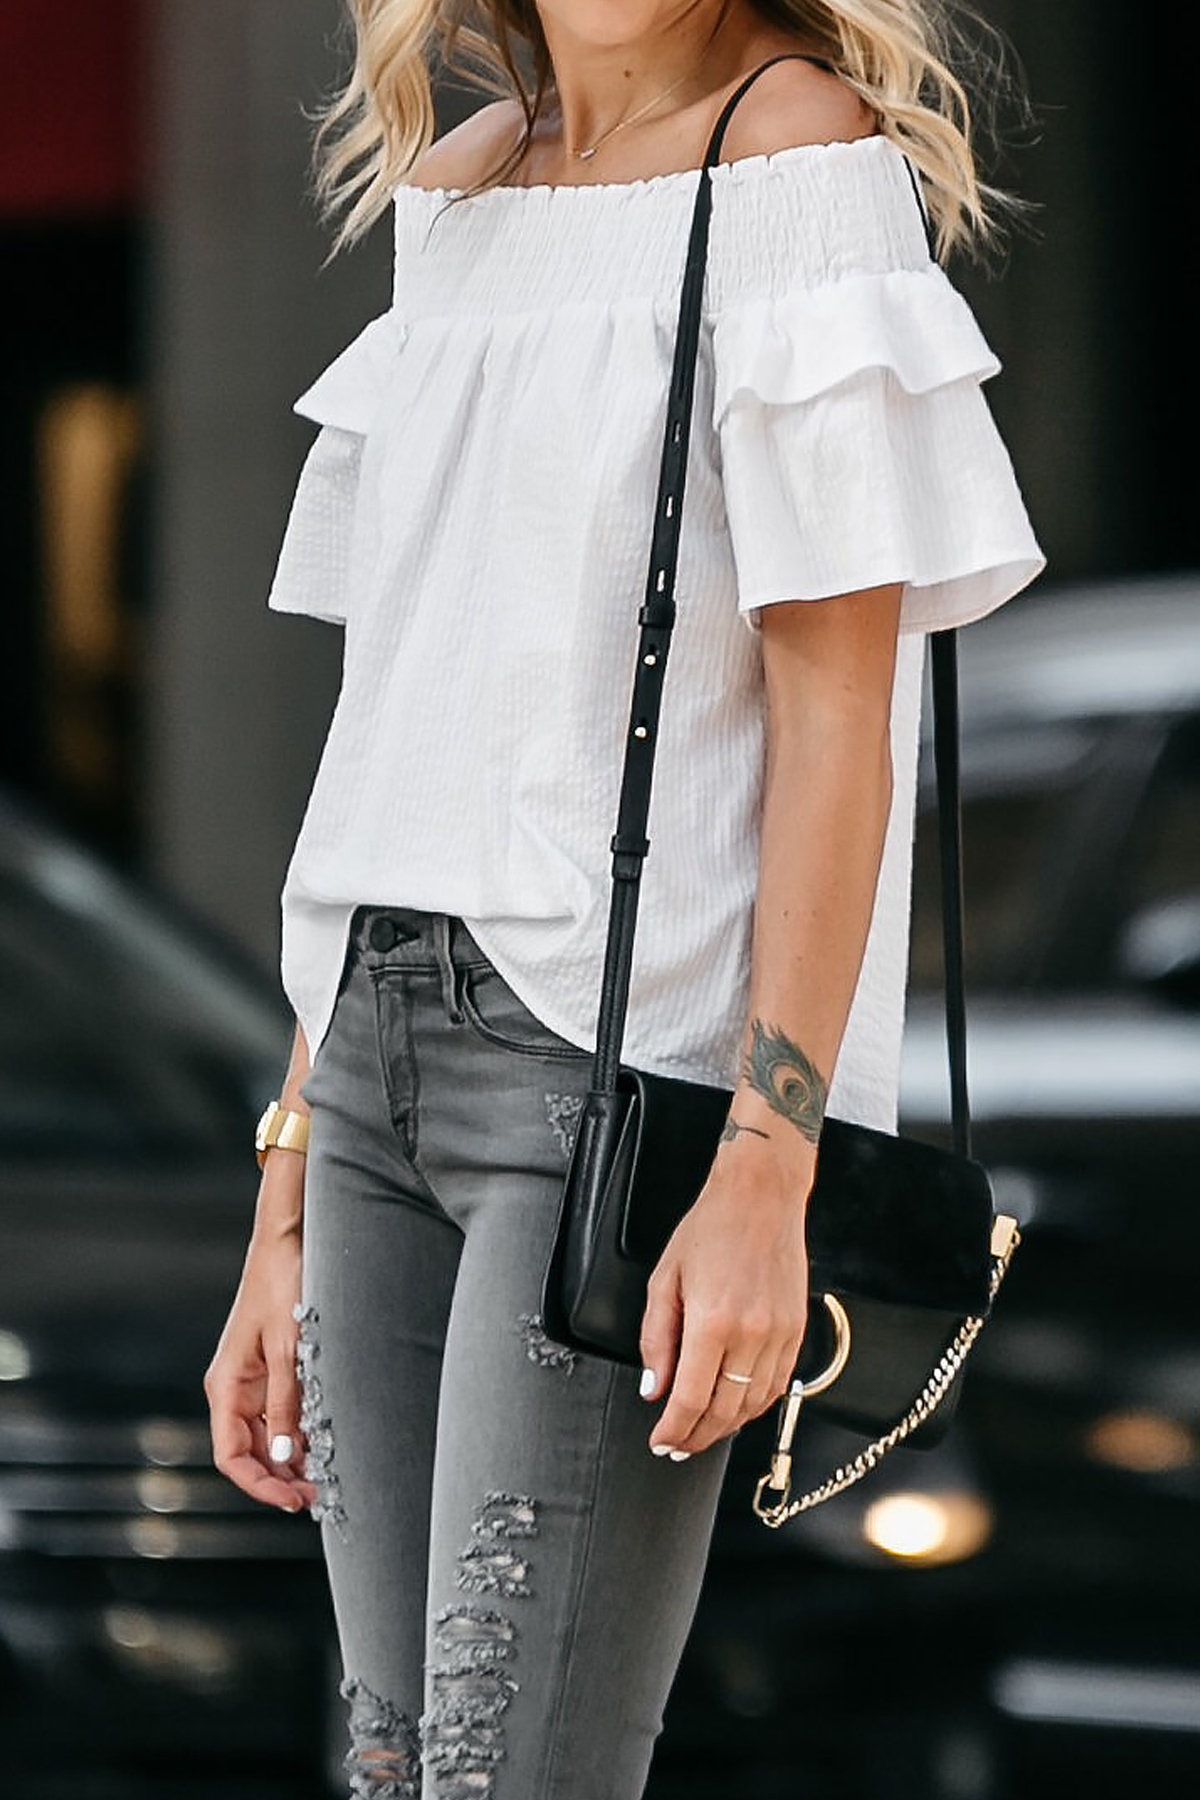 Fashion Jackson, Dallas Blogger, Fashion Blogger, Street Style, Nordstrom White Off-the-Shoulder Top, Frame Grey Ripped Skinny Jeans, Chloe Faye Black Handbag, Christian Louboutin White Pumps